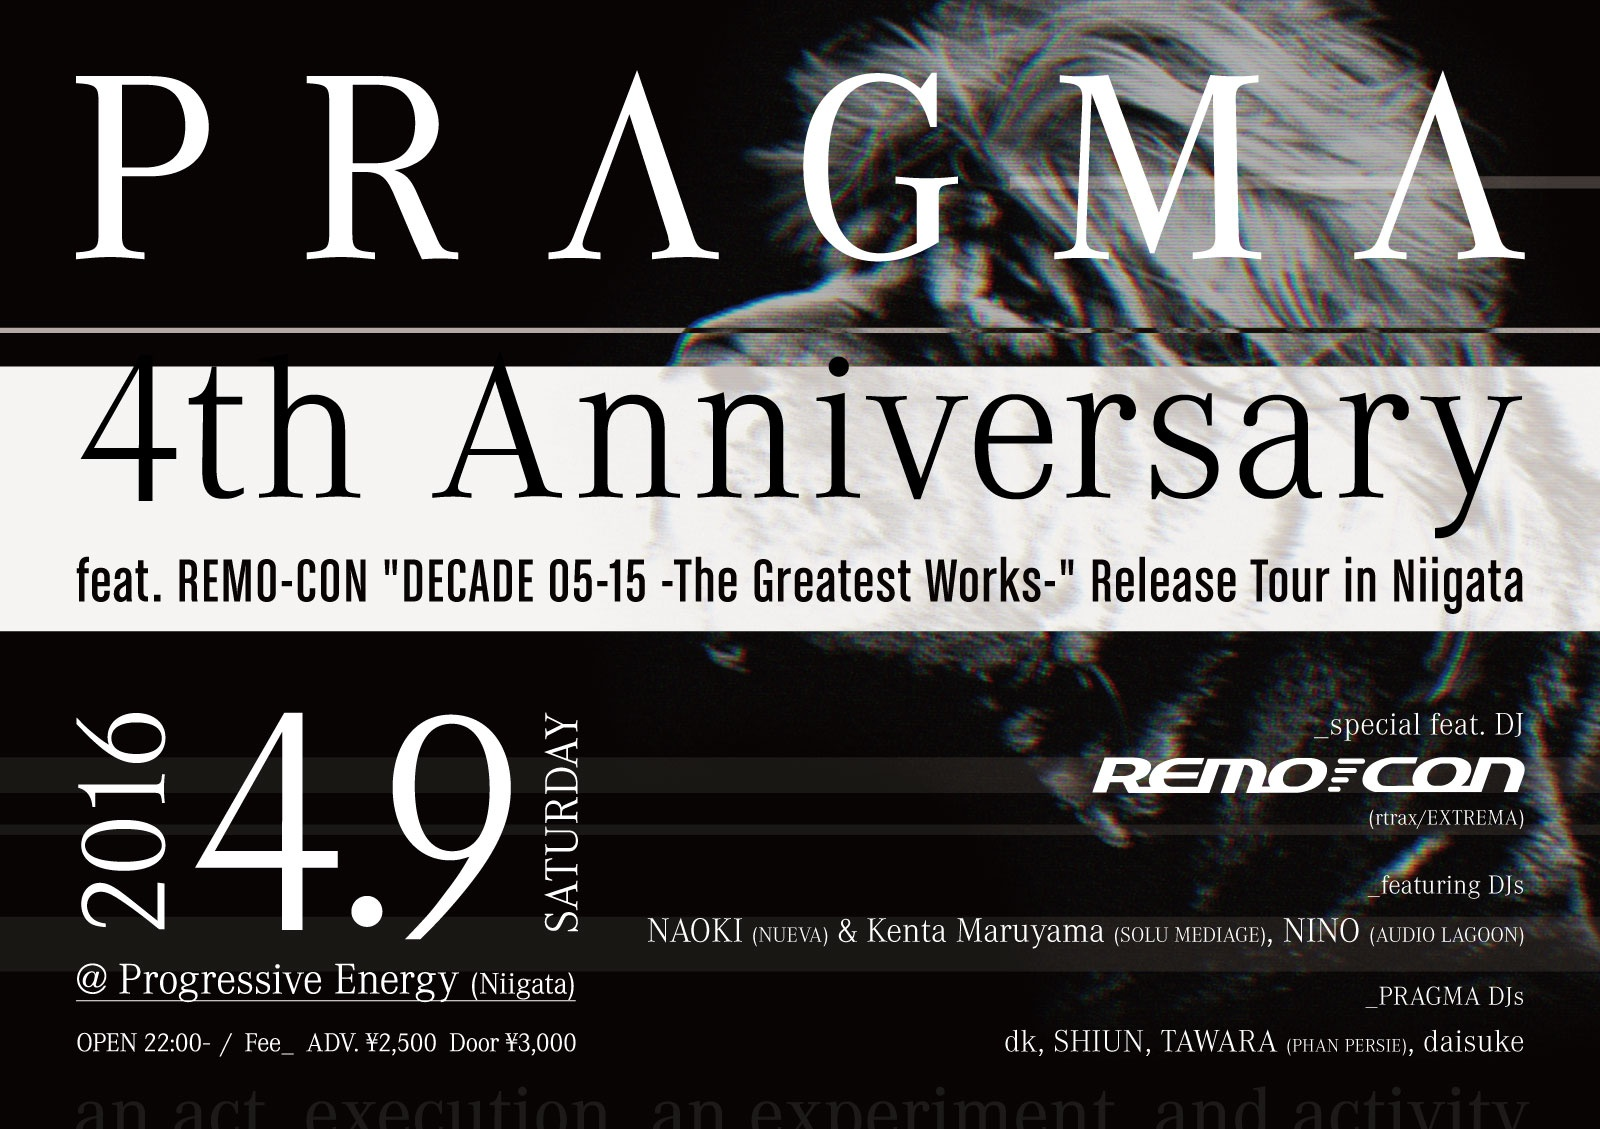 "PRAGMA 4th Anniversary / feat. REMO-CON ""DECADE 05-15 -The Greatest Works-"" Release Tour in Niigata"